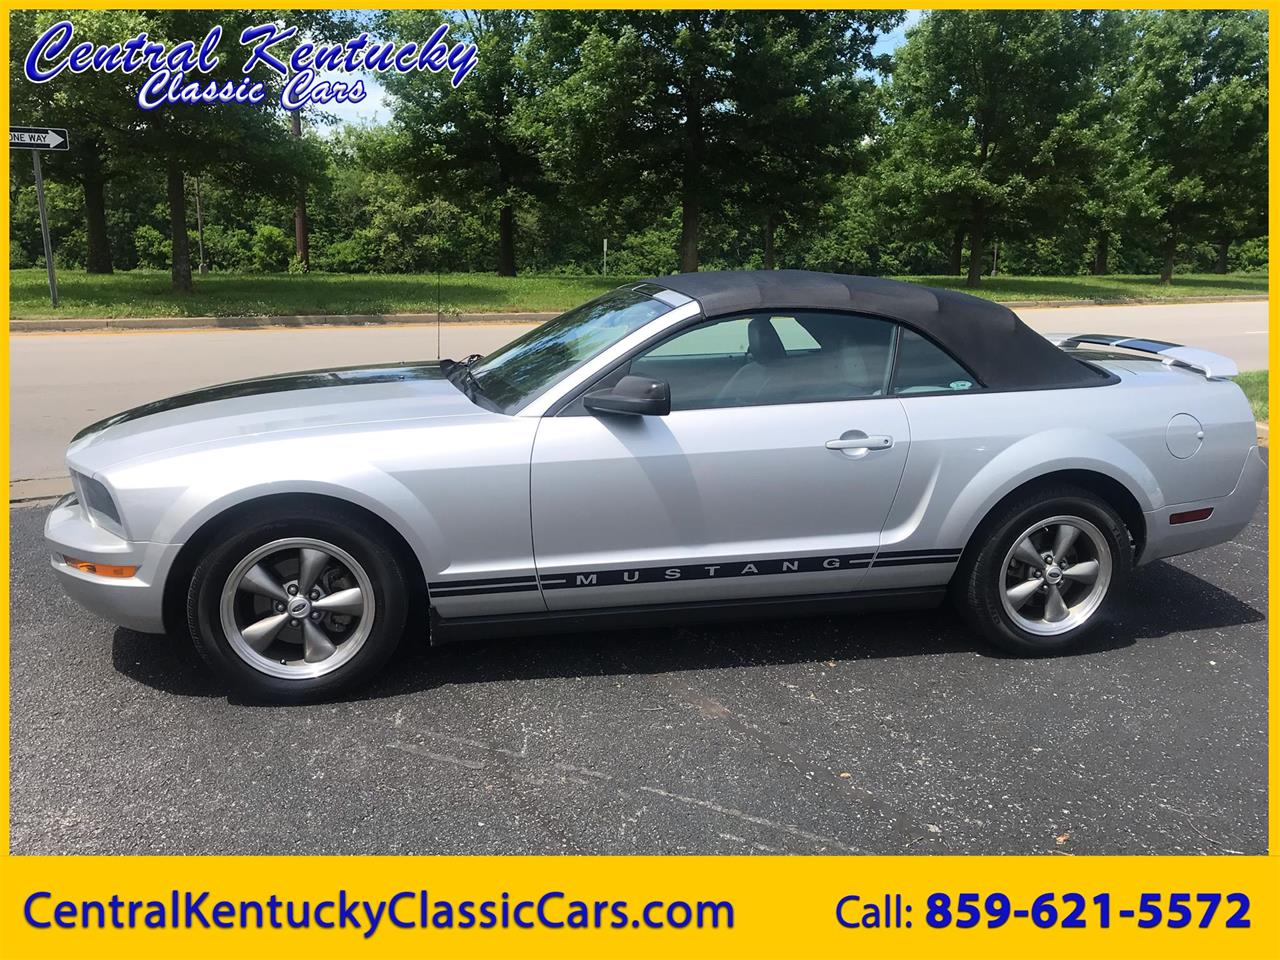 For sale 2005 ford mustang in paris kentucky